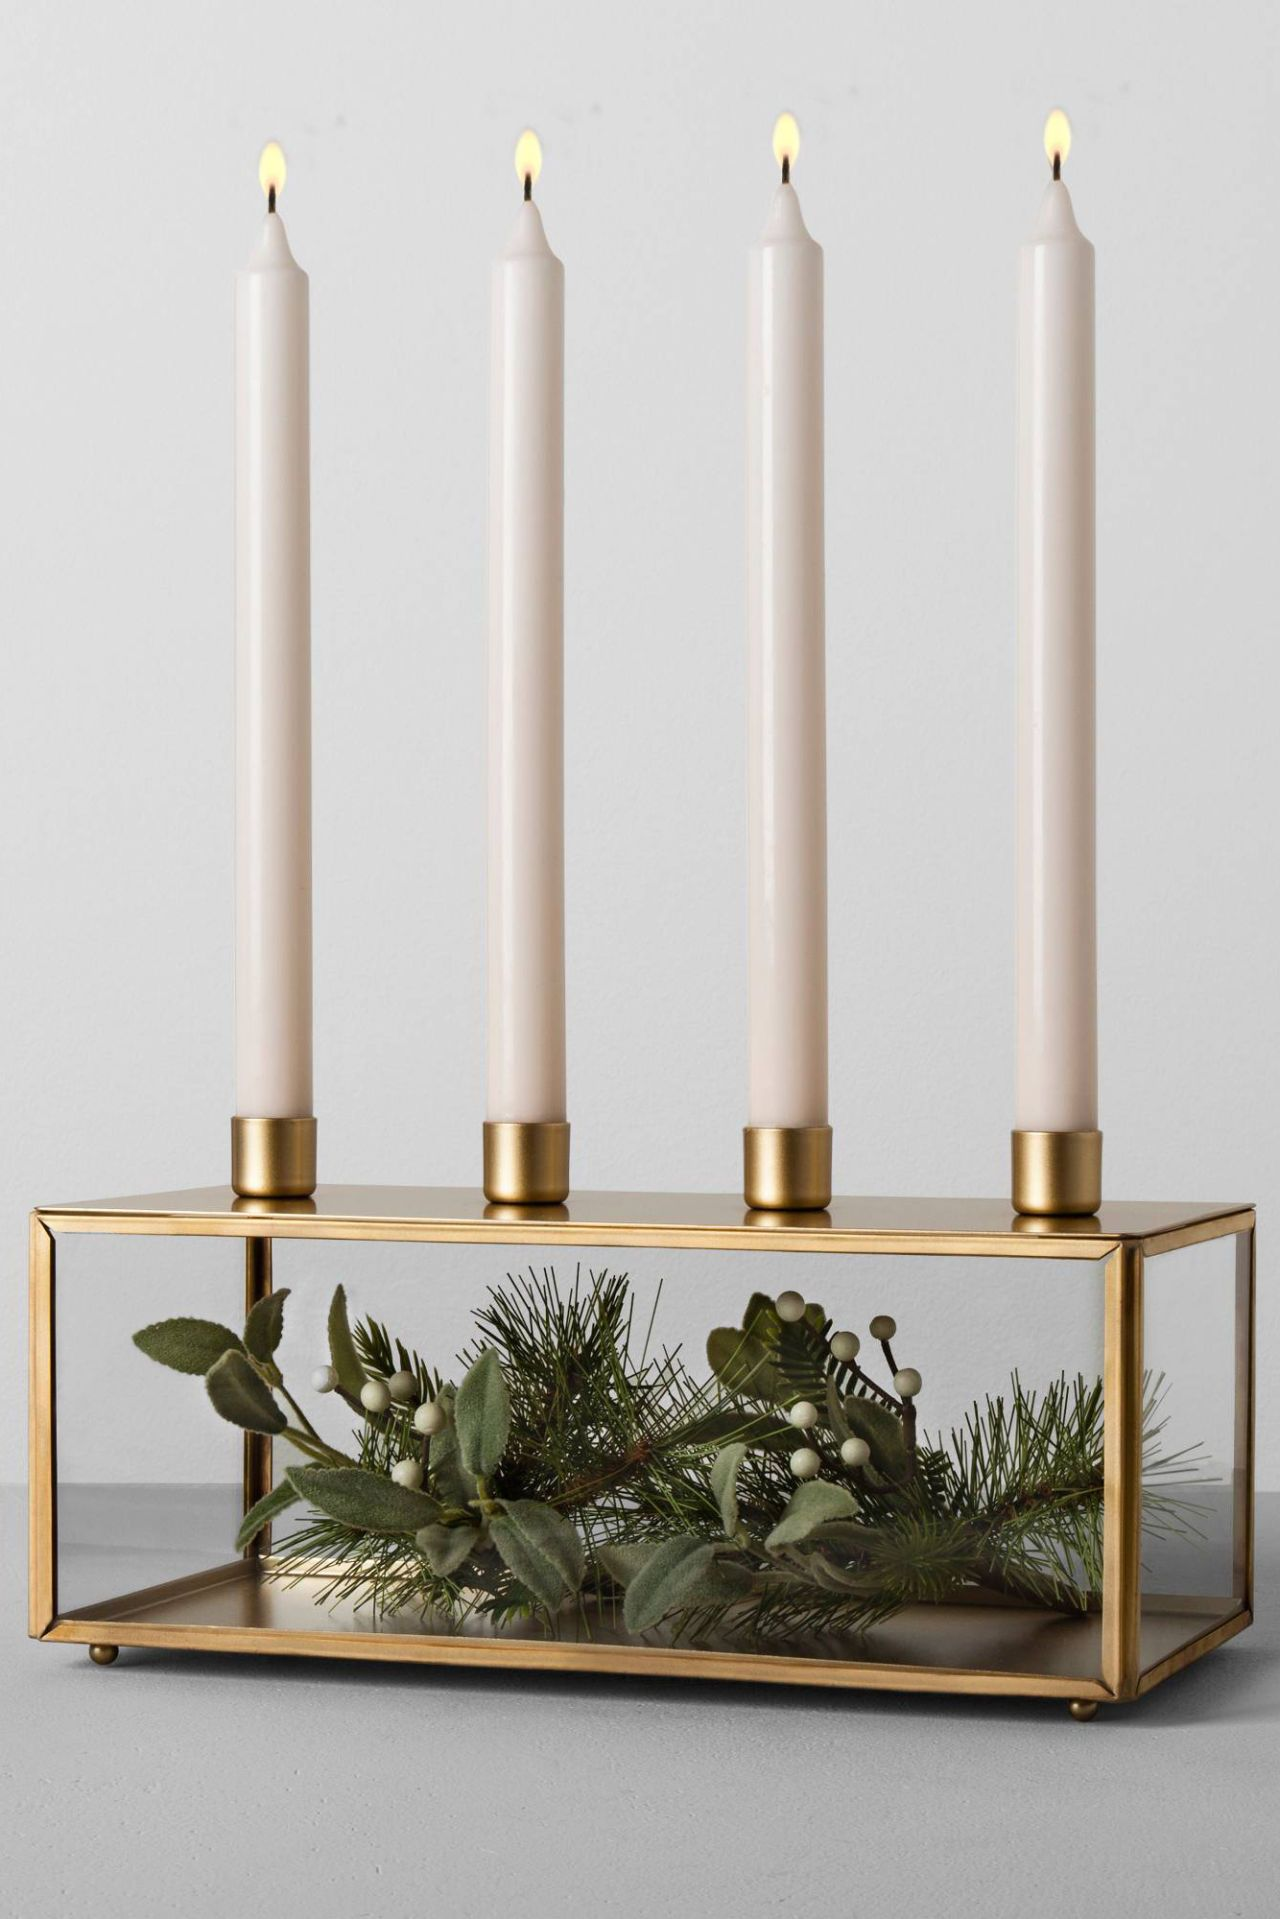 The 15 Best Pieces from Joanna Gaines' New Target Collection #magnoliachristmasdecor